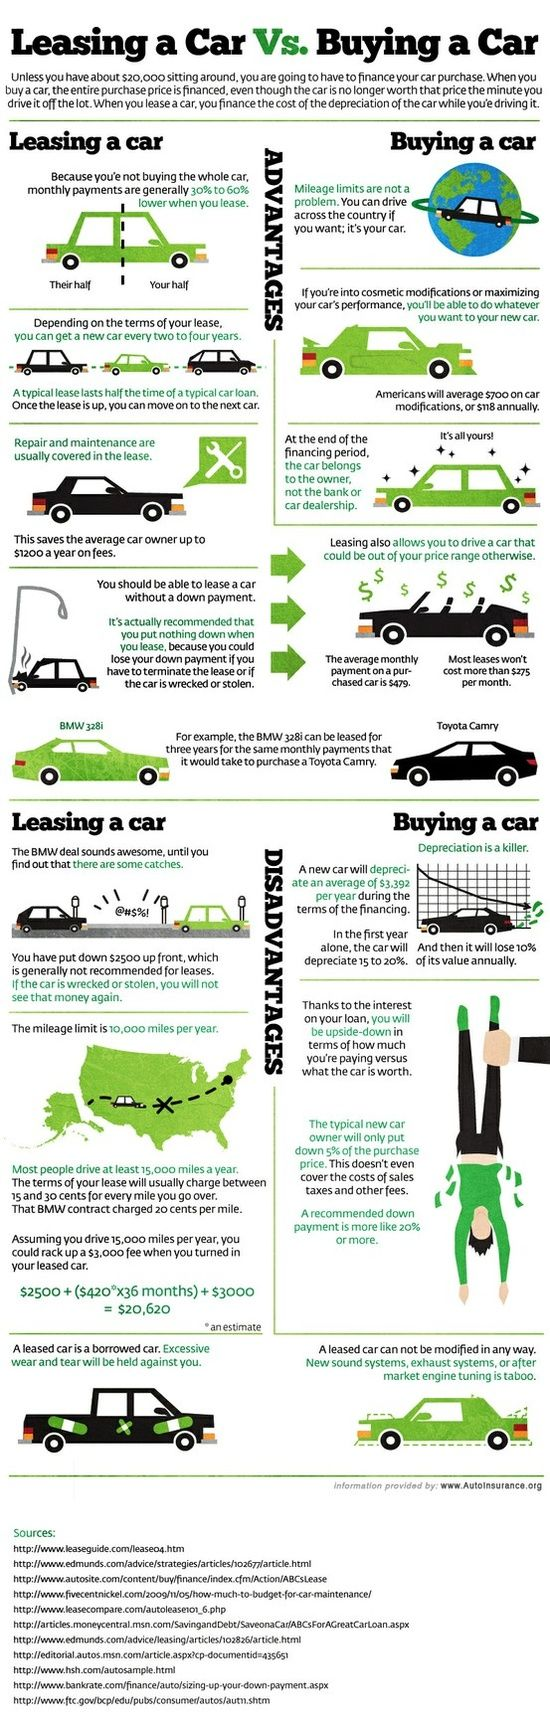 25 best best car tips and infographics images on pinterest. Black Bedroom Furniture Sets. Home Design Ideas